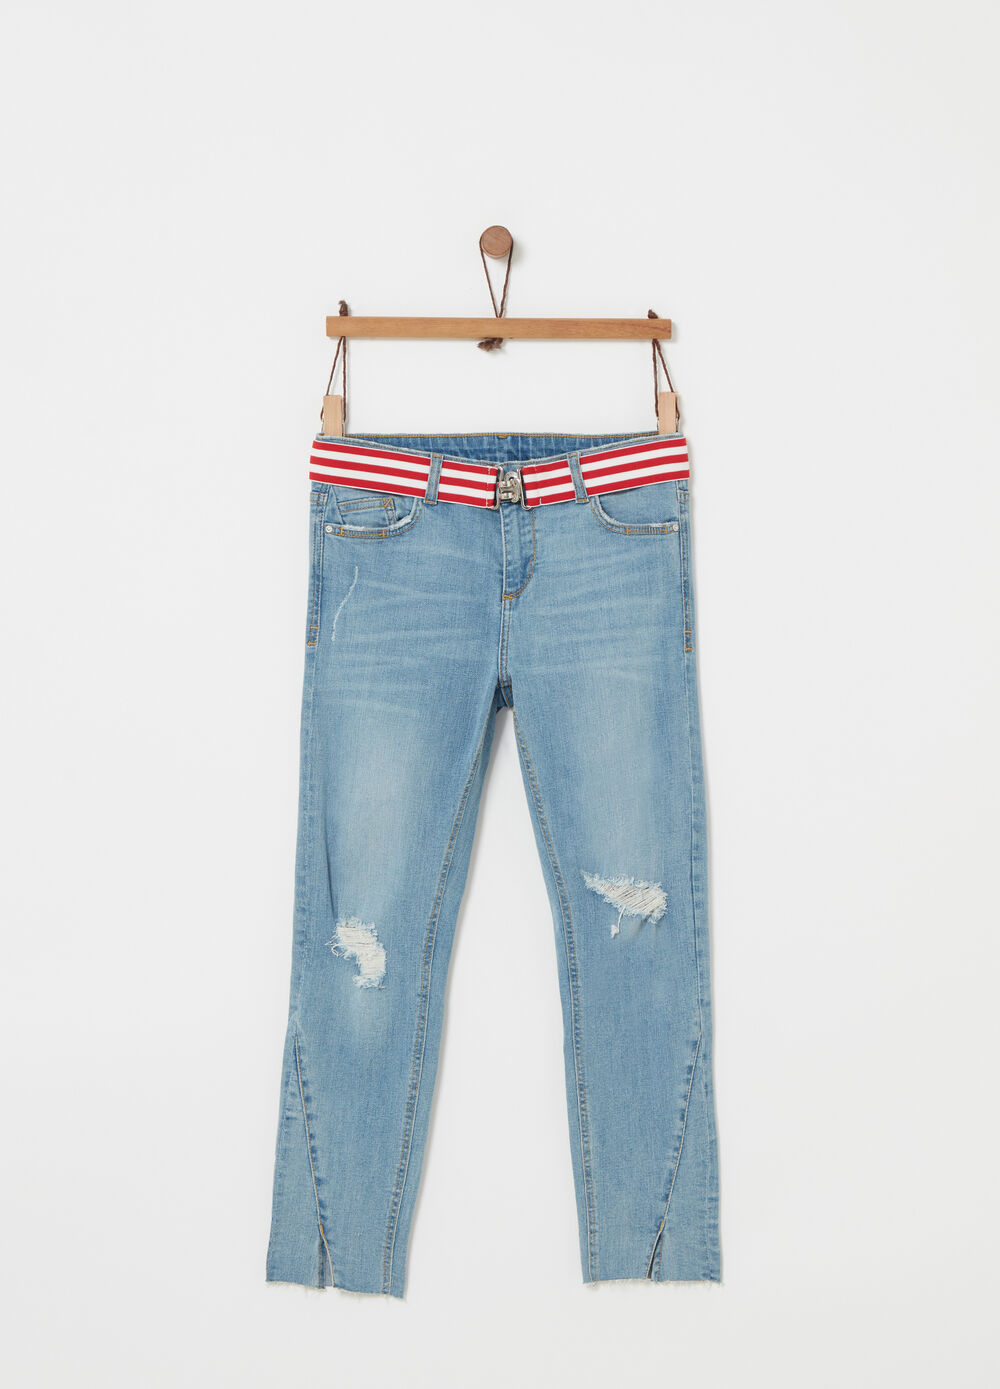 Skinny-fit jeans with striped belt